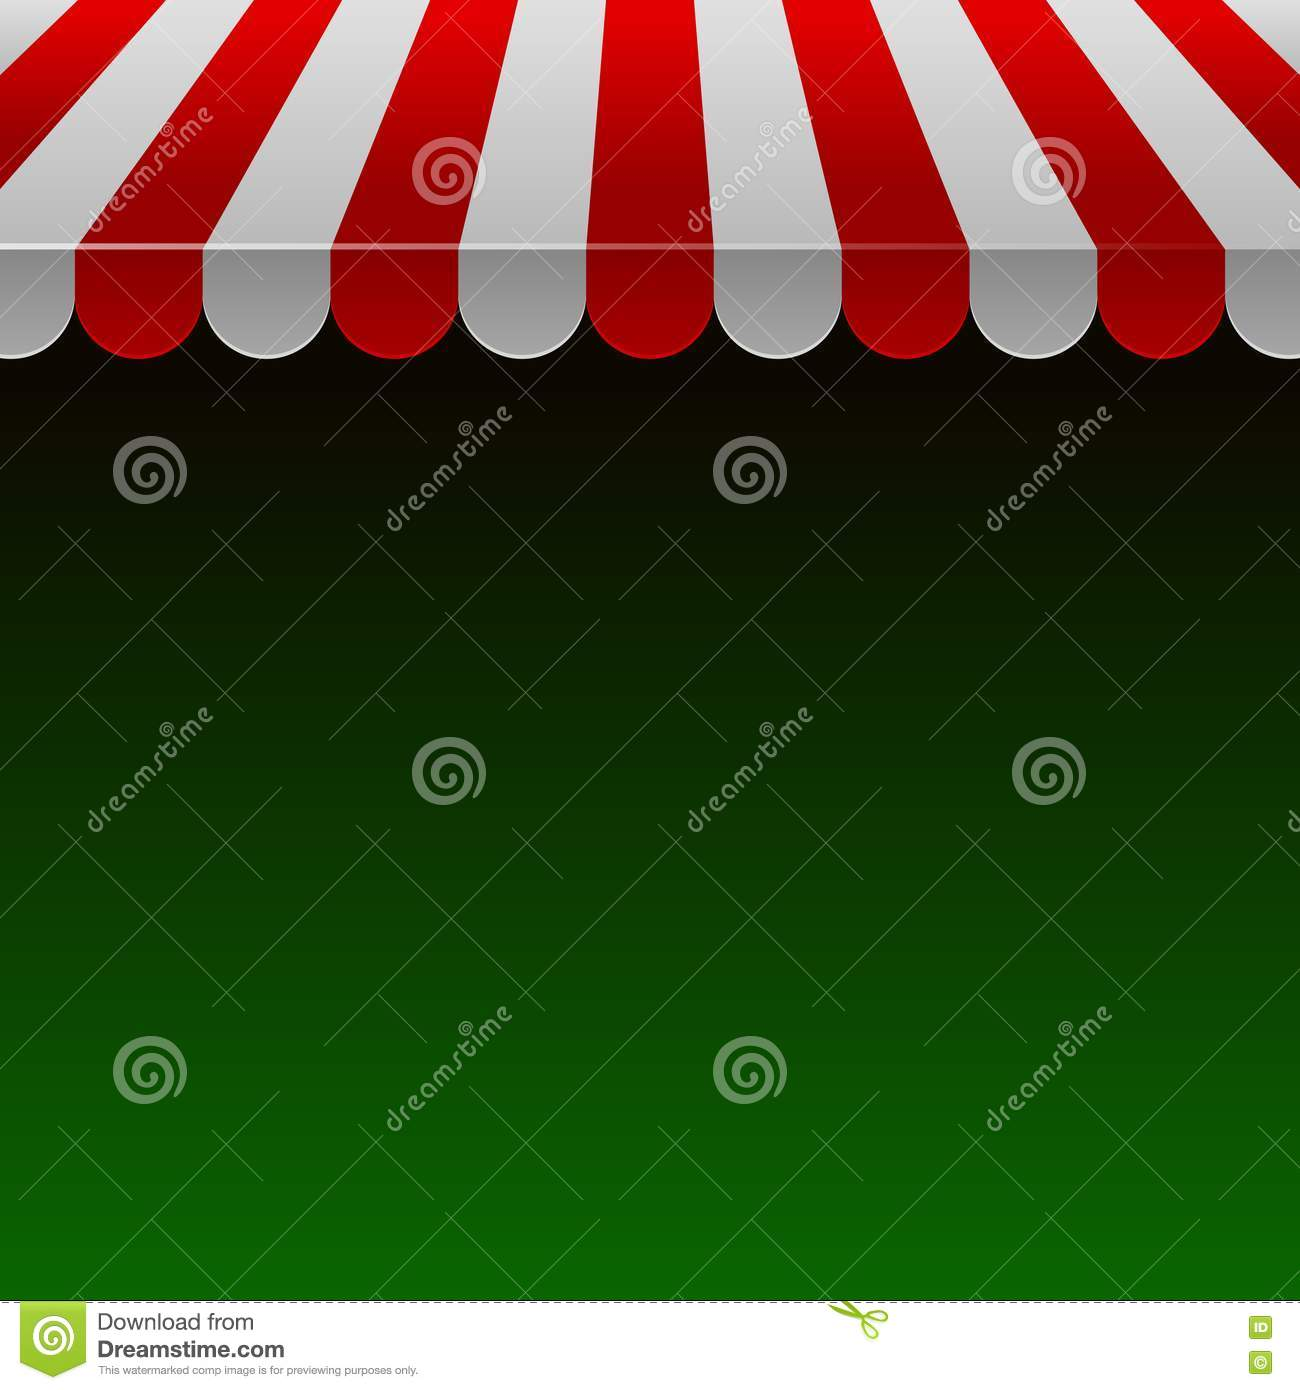 Red And White Strip Shop Awning With Space For Text Vector